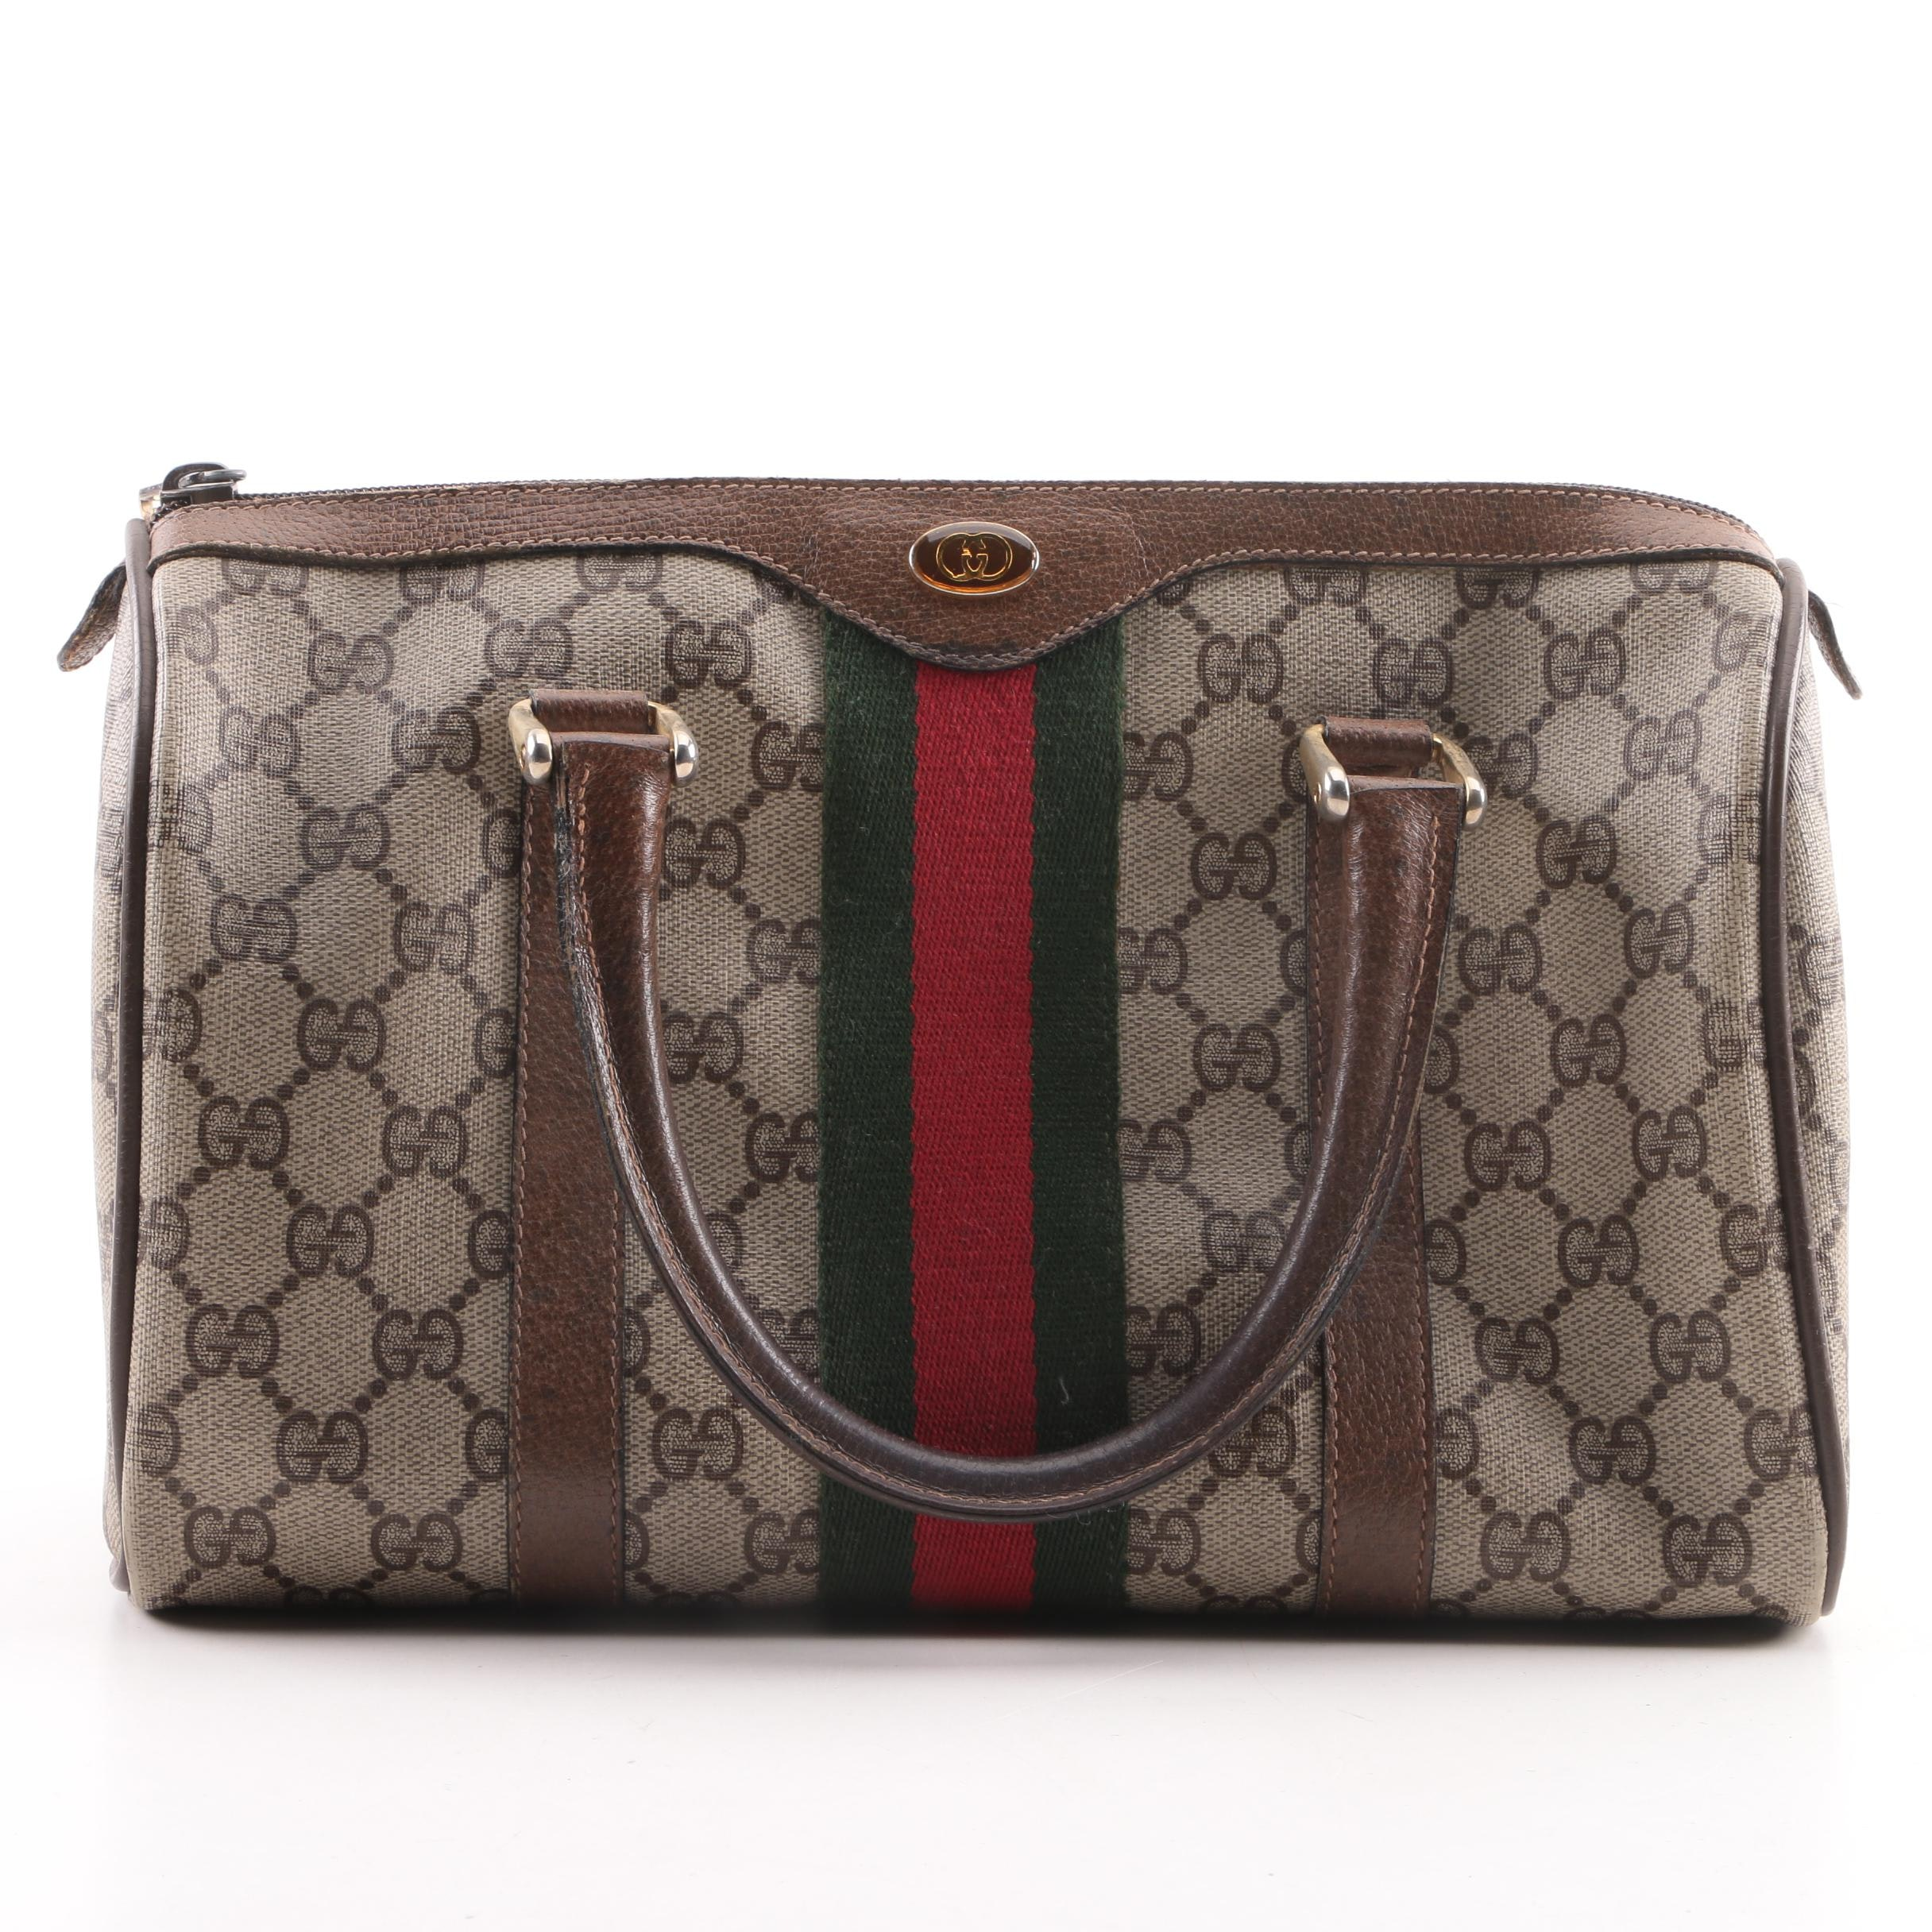 Vintage Gucci Accessory Collection Supreme Canvas and Leather Satchel